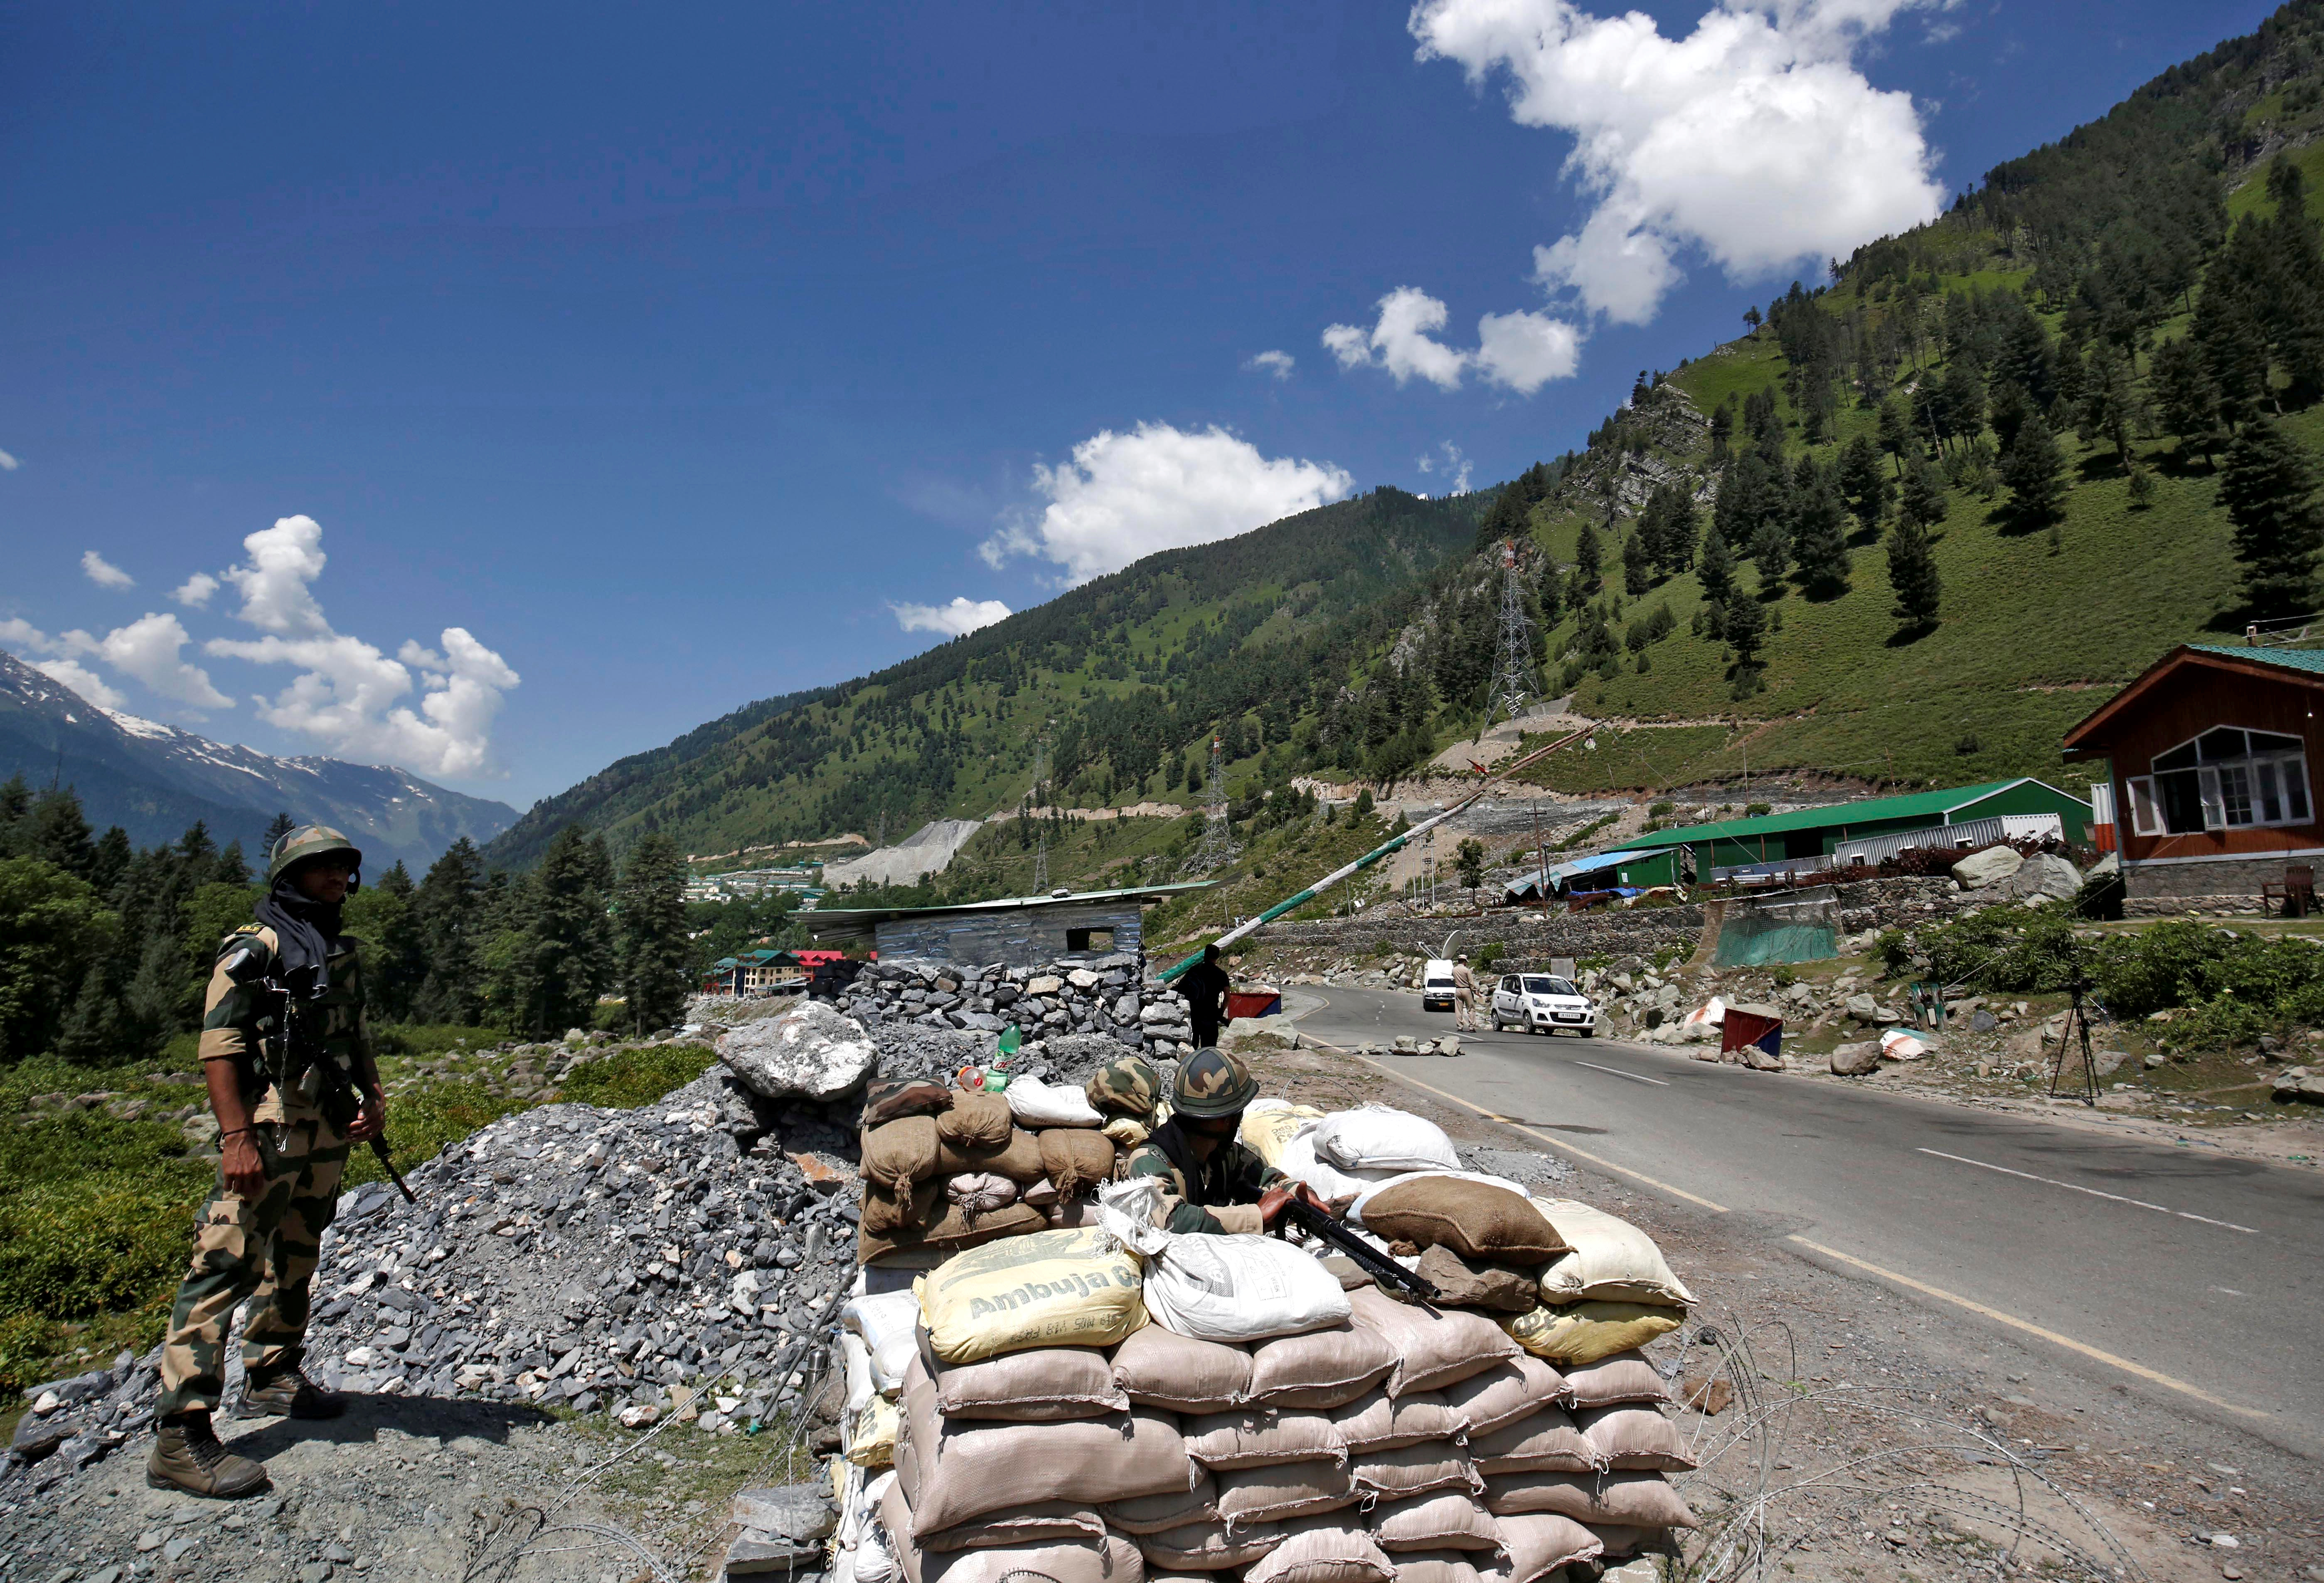 India's Border Security Force (BSF) soldiers stand guard at a checkpoint along a highway leading to Ladakh, at Gagangeer in Kashmir's Ganderbal district June 17, 2020. REUTERS/Danish Ismail